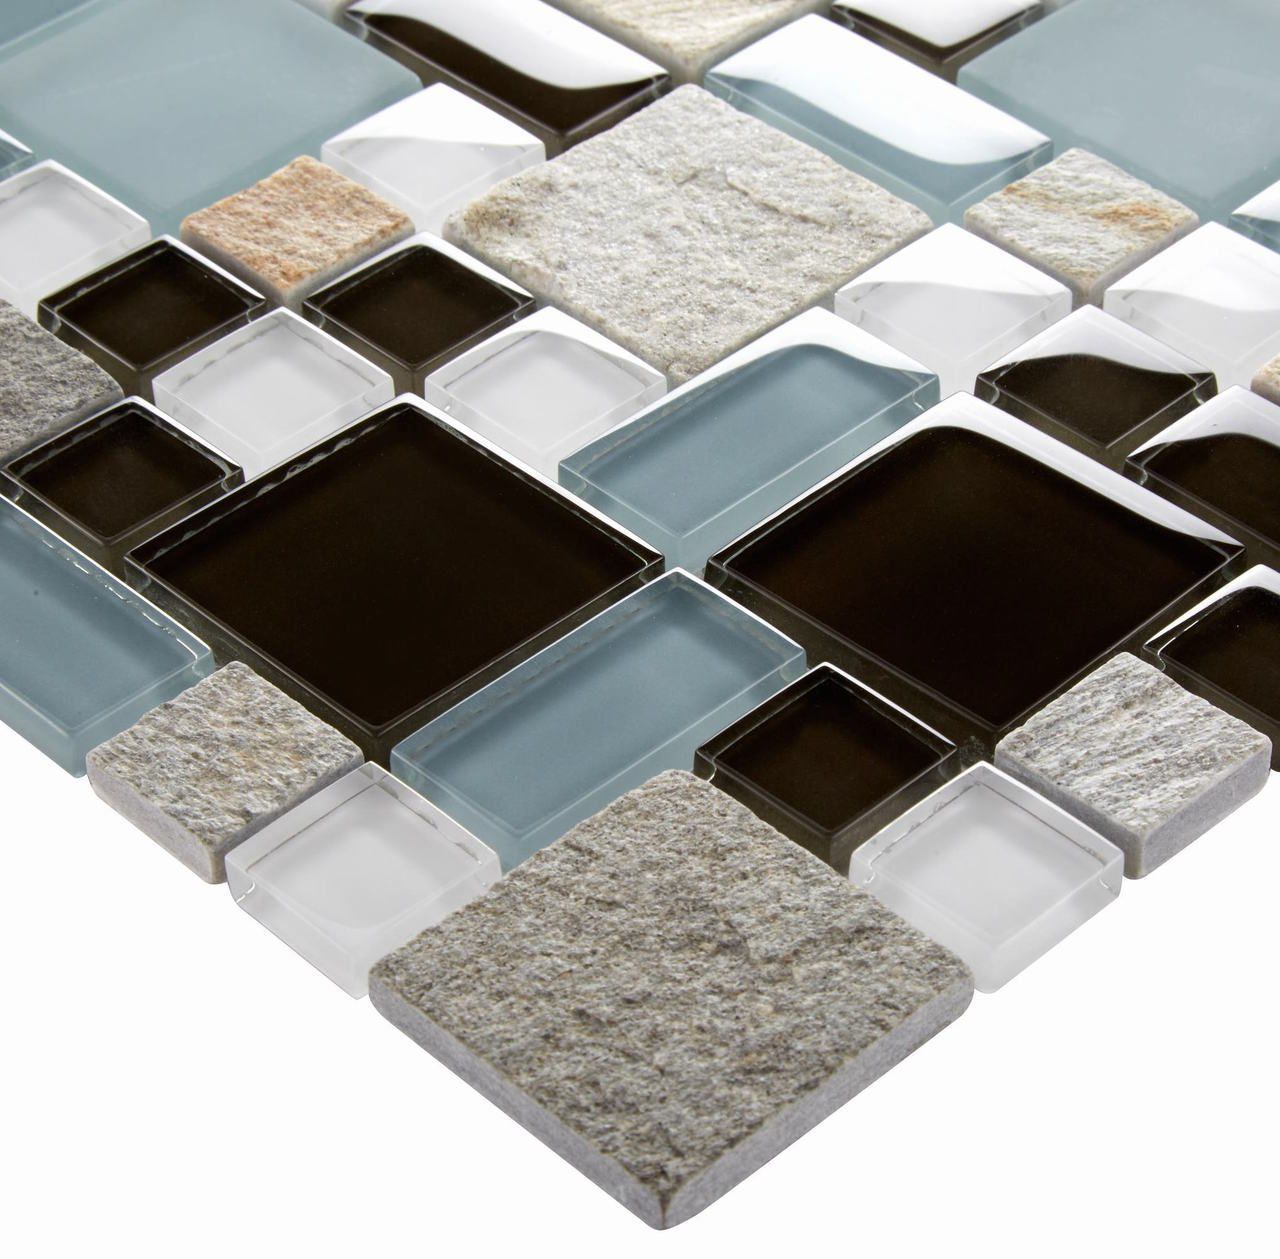 Pin On Glass And Stone Tiles